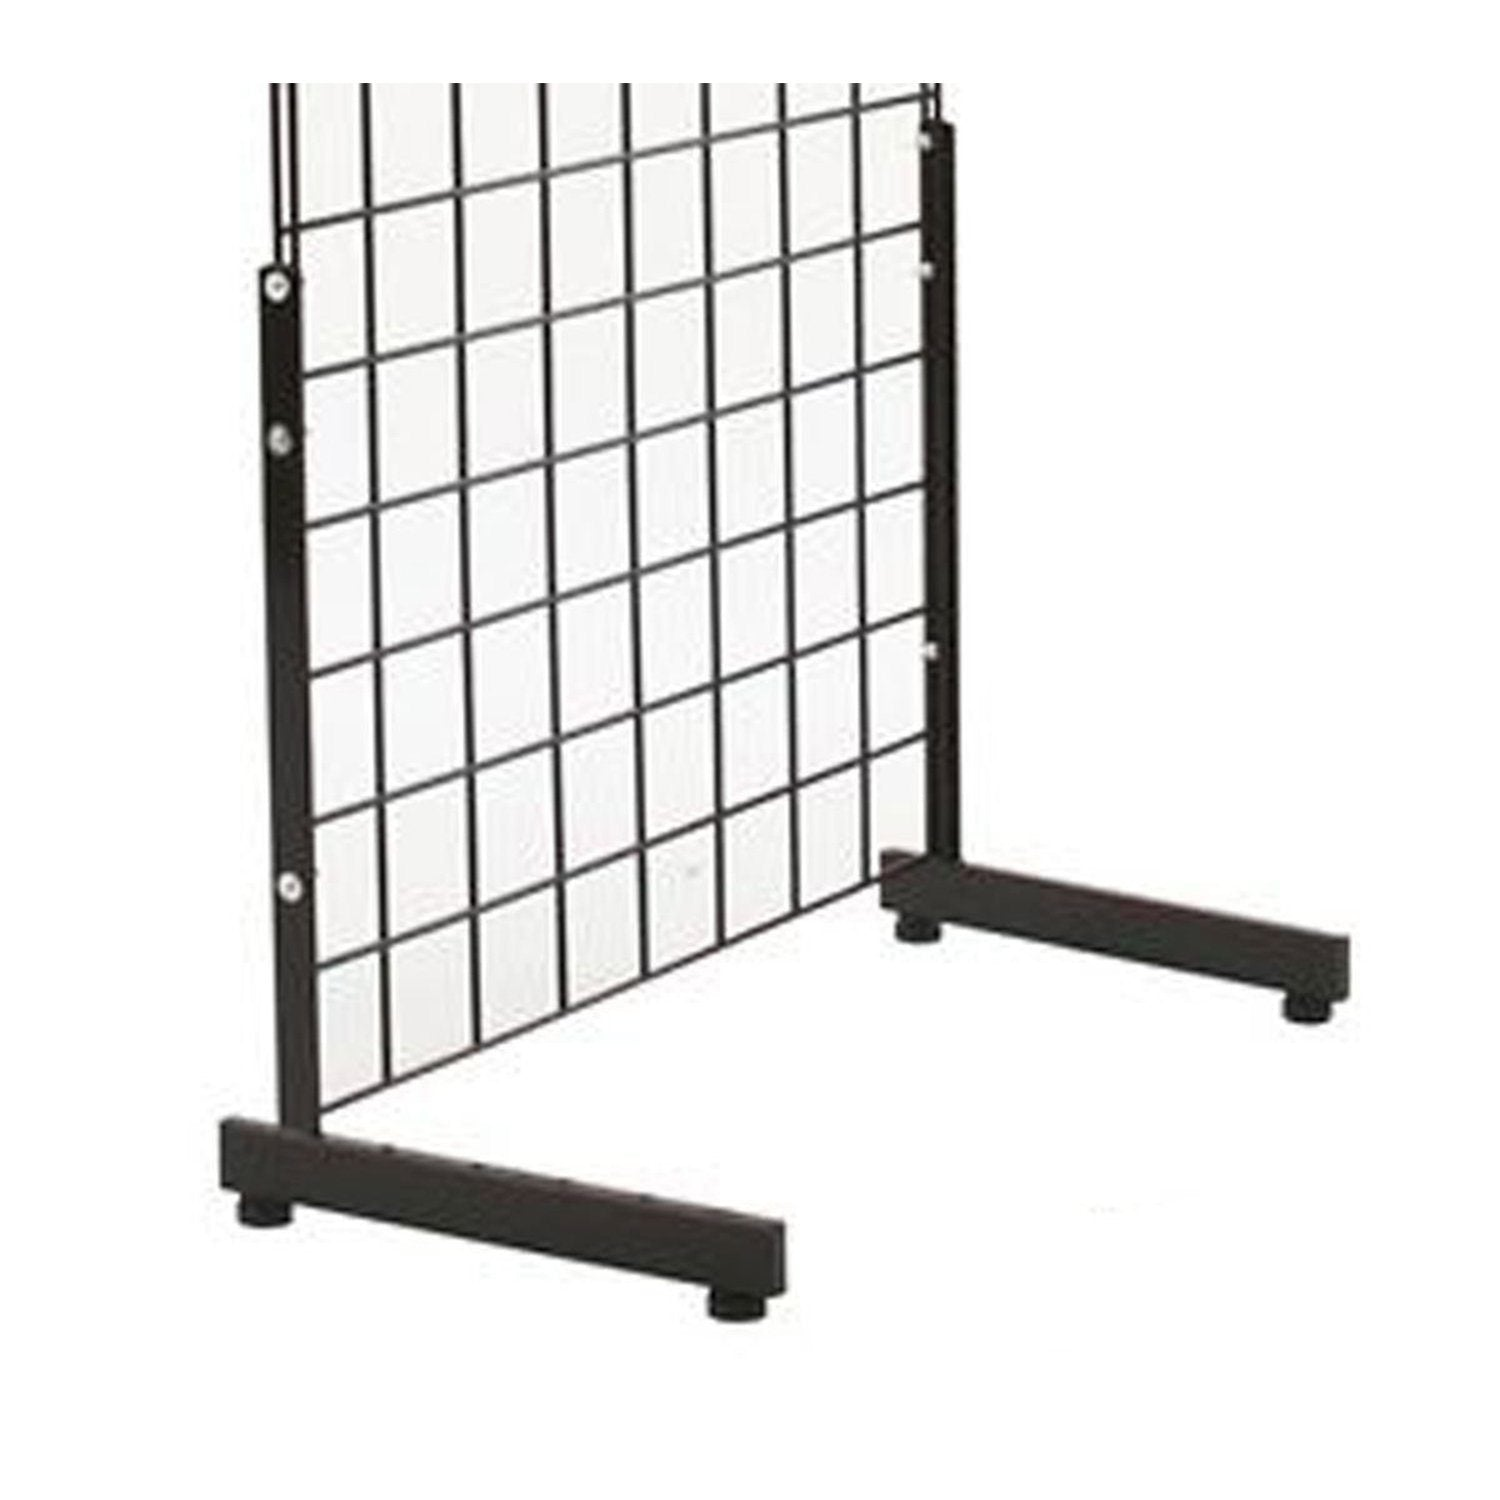 'L' SHAPED GRID LEGS (SET OF 2) - Display Fixture Warehouse Retail